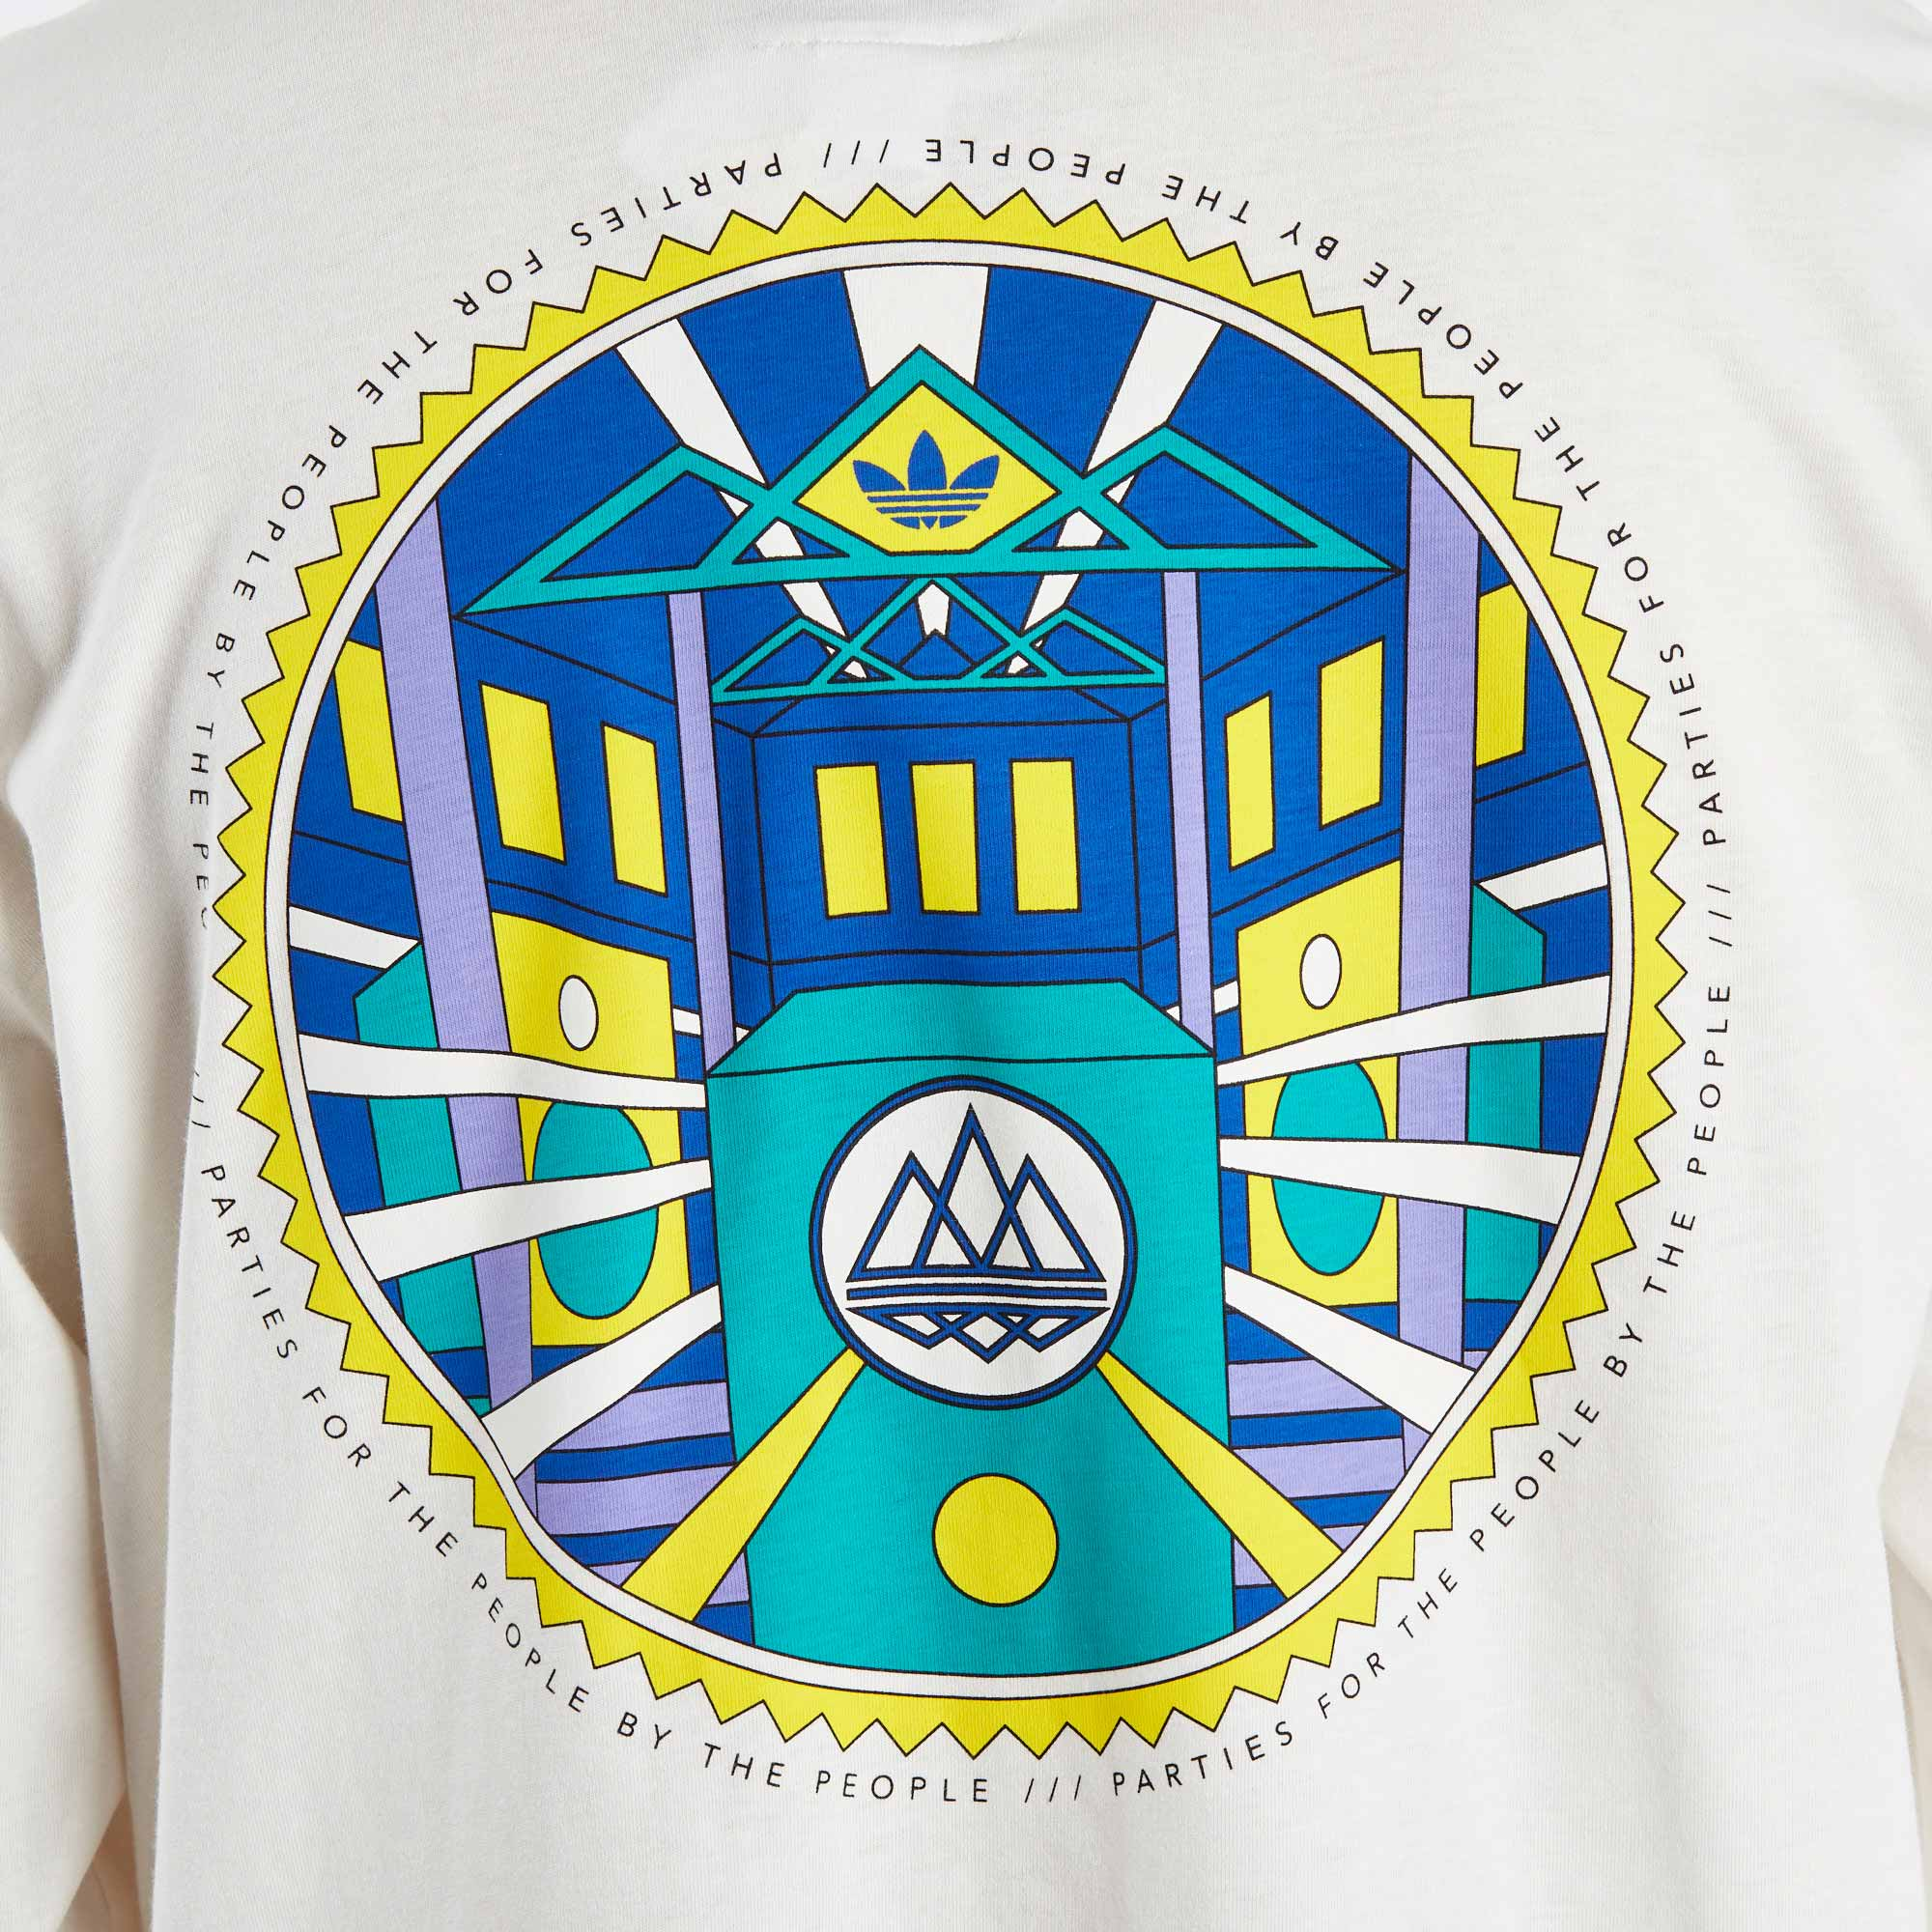 7b8a5f282 adidas Graphic Ls Tee - Dm1355 - Sneakersnstuff | sneakers ...